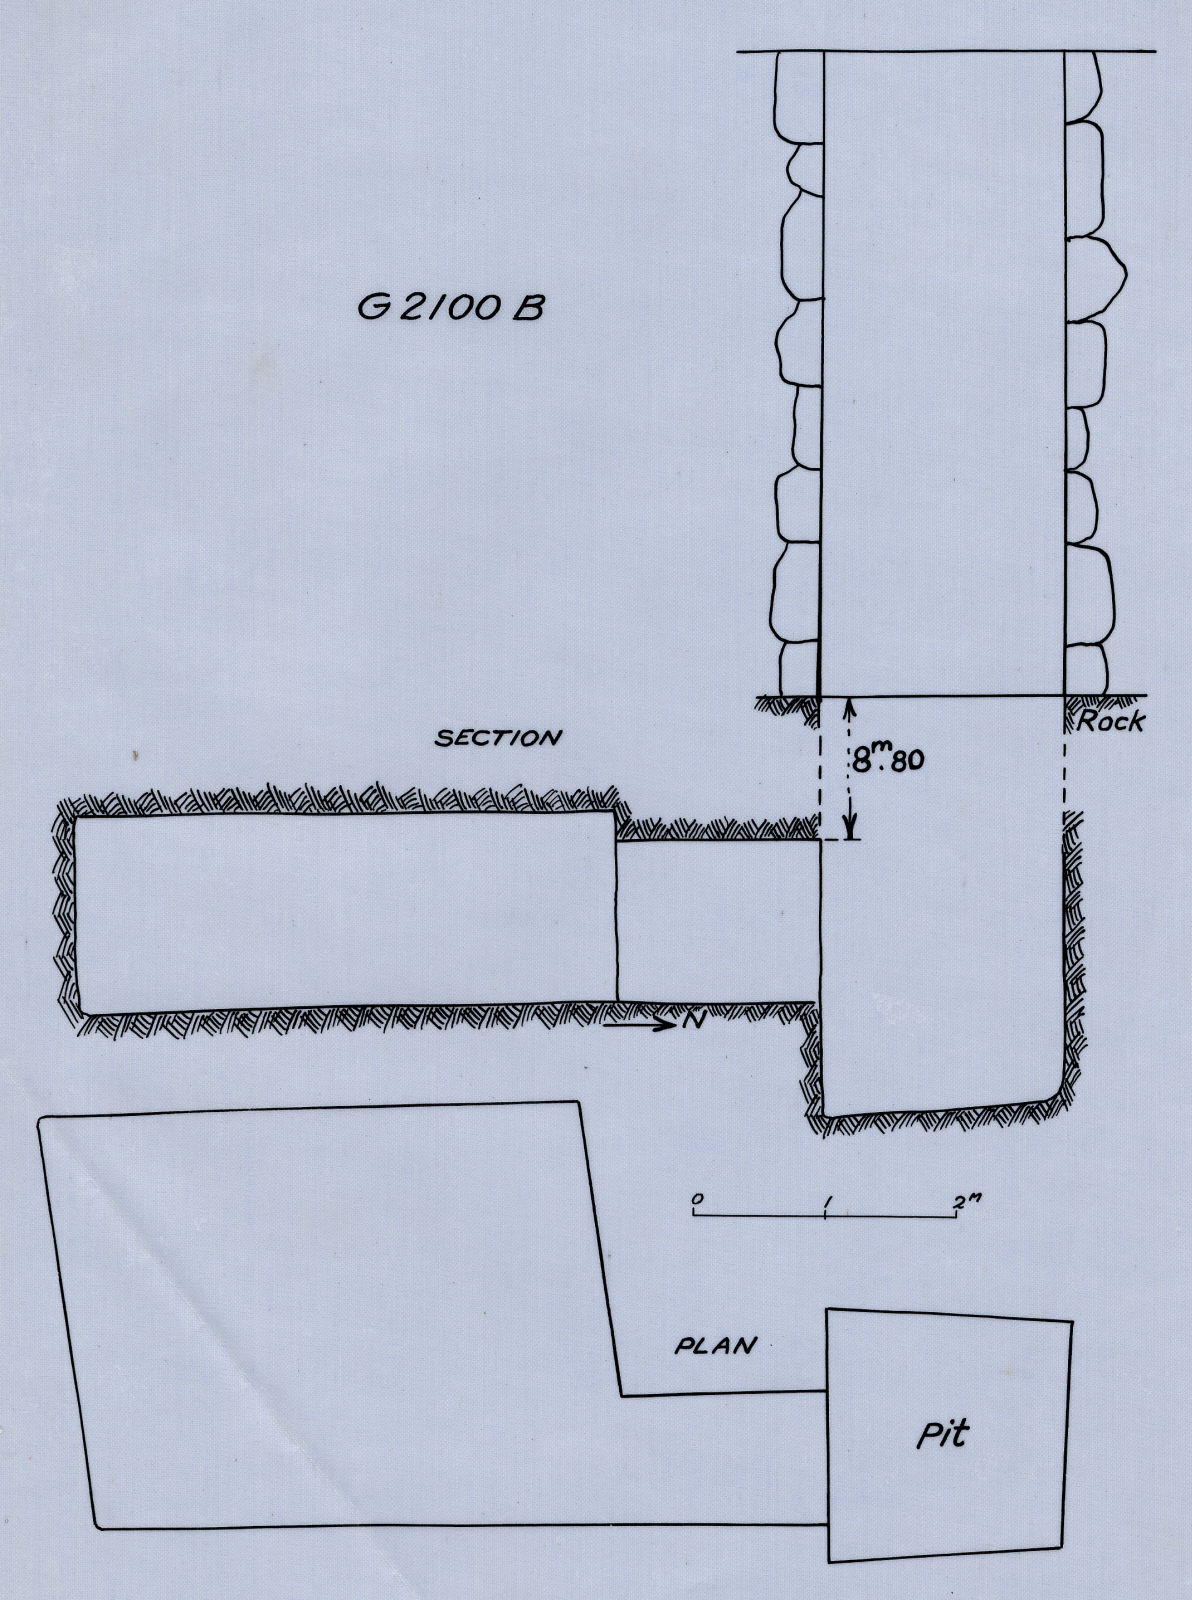 Maps and plans: G 2100-I, Shaft B